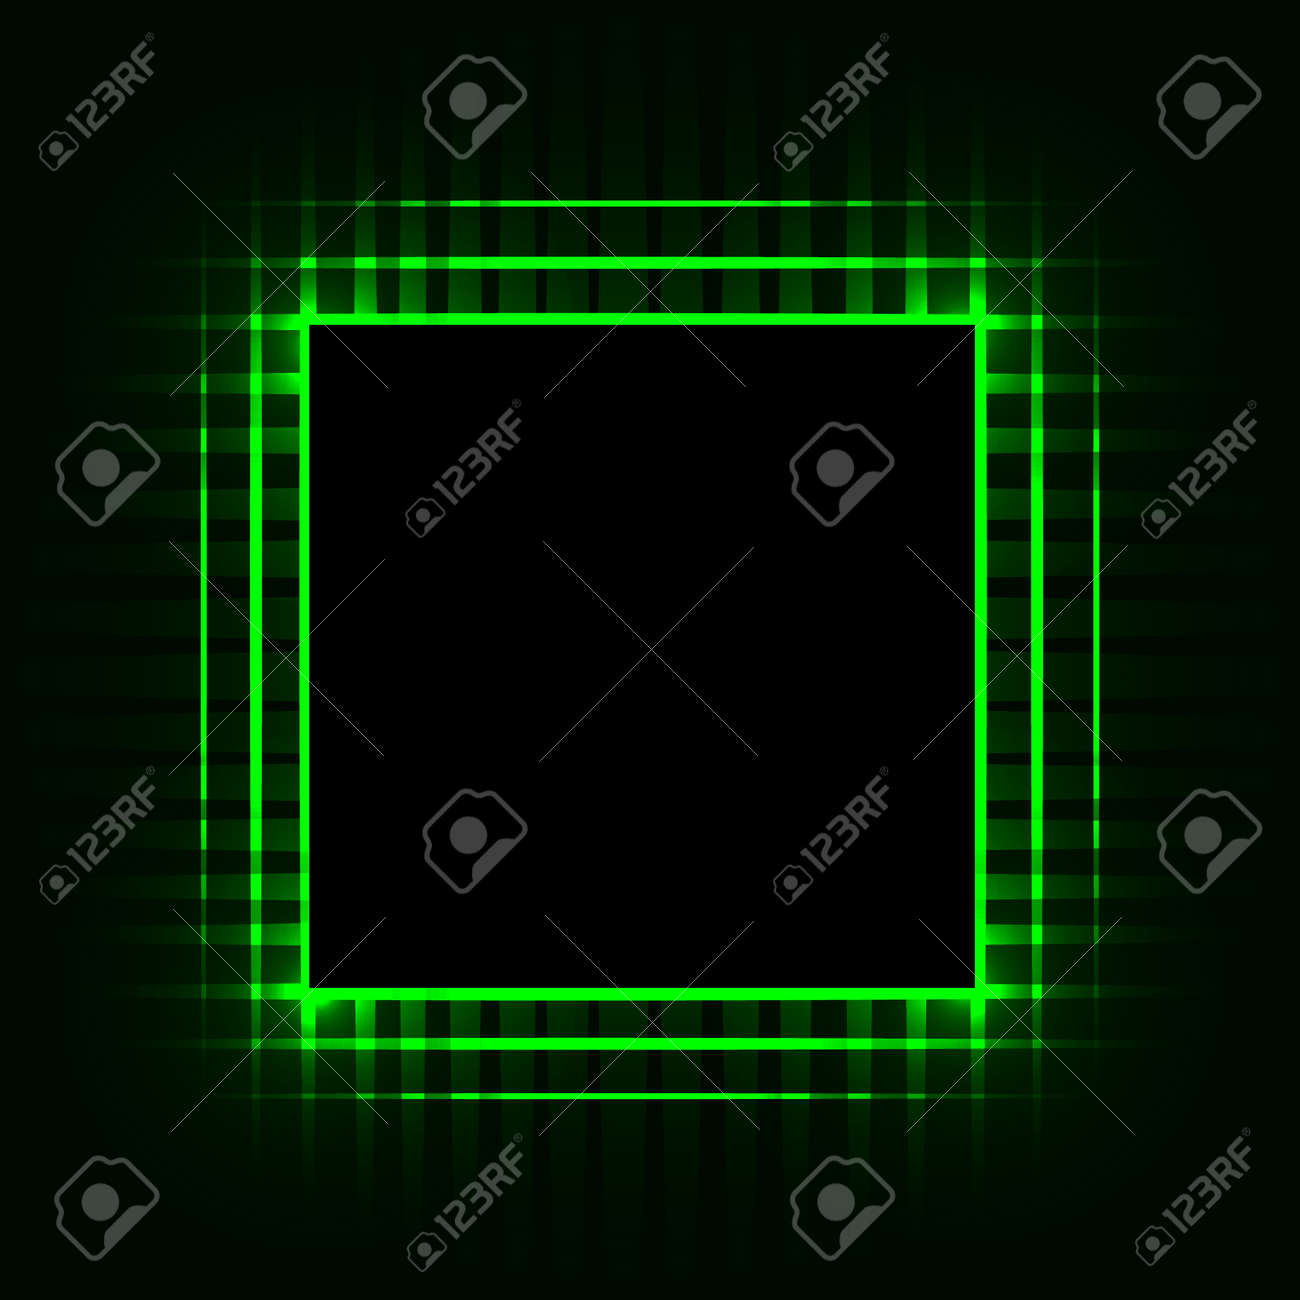 Cpu Printed Circuit Board Motherboard Chip Computer Abstract Symbol Background Vector